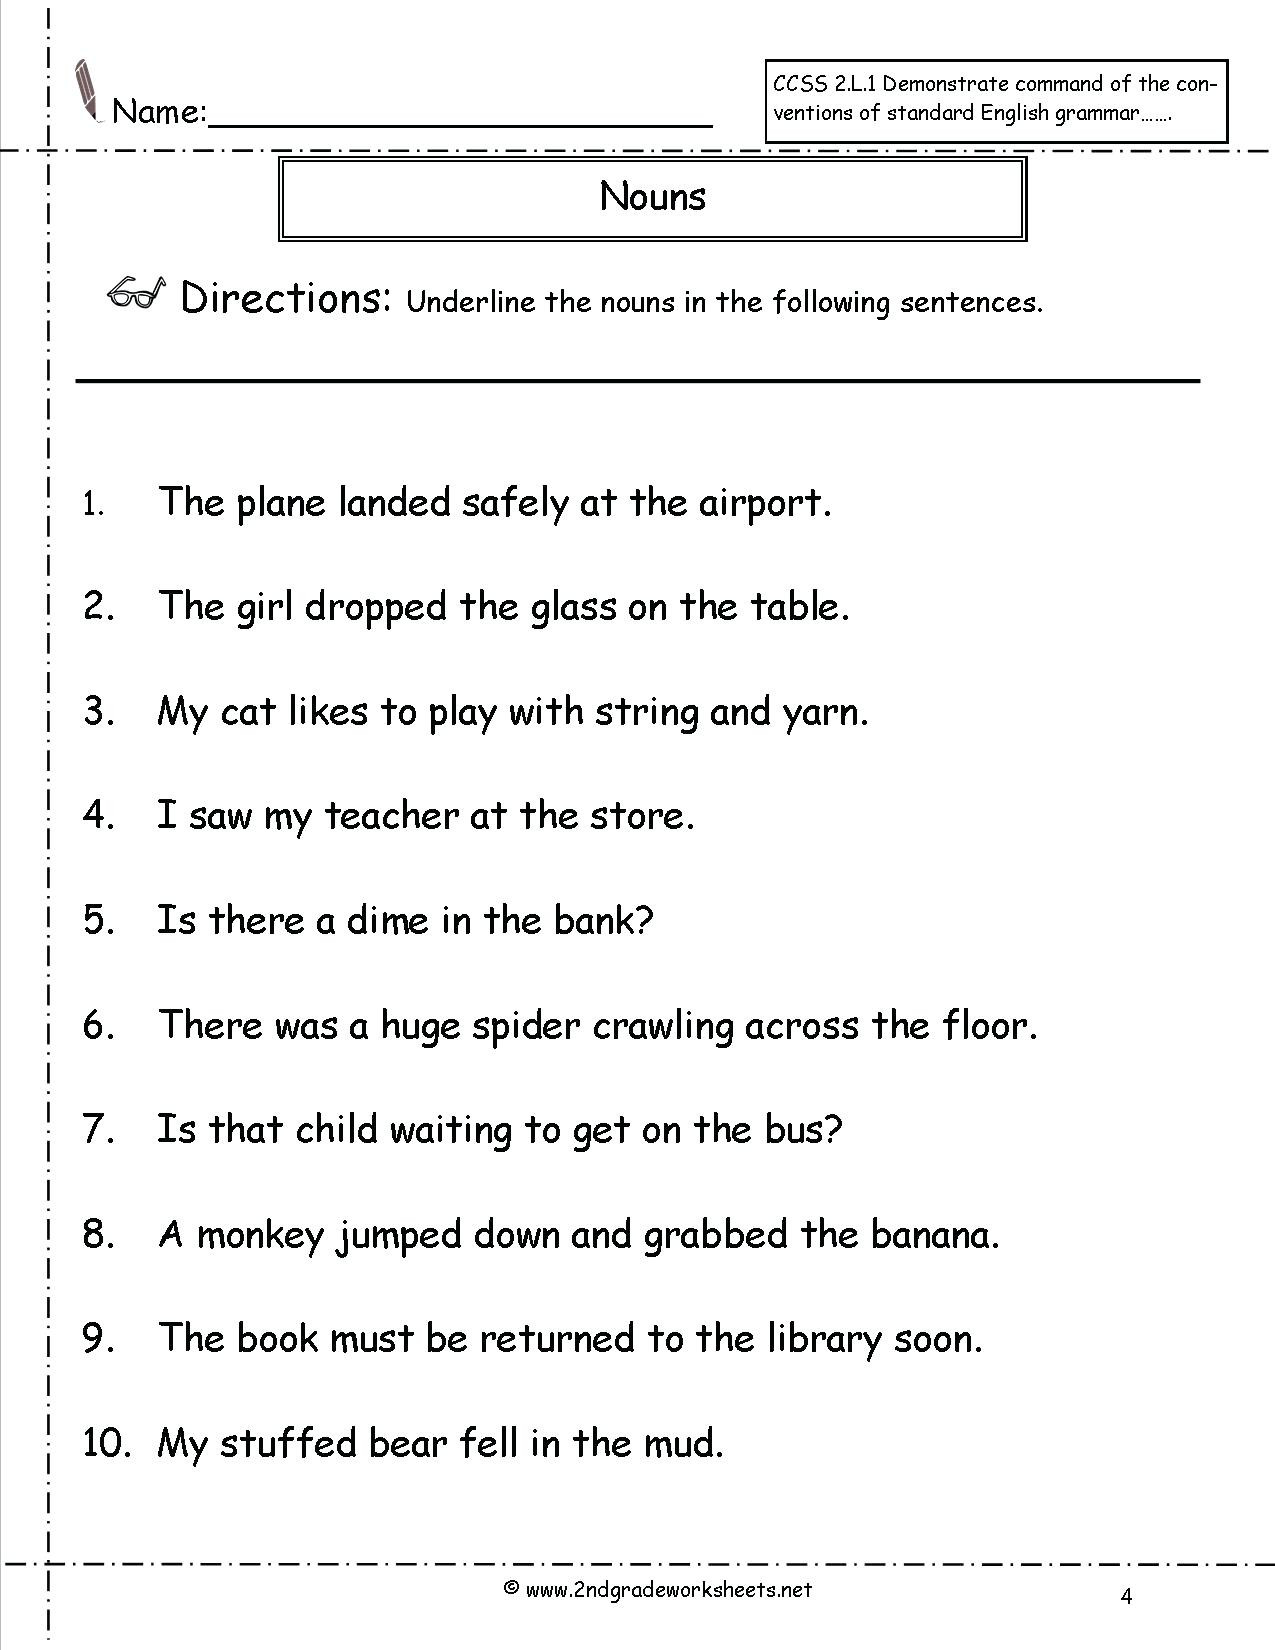 hight resolution of 4th Grade Gender Nouns Worksheet   Printable Worksheets and Activities for  Teachers